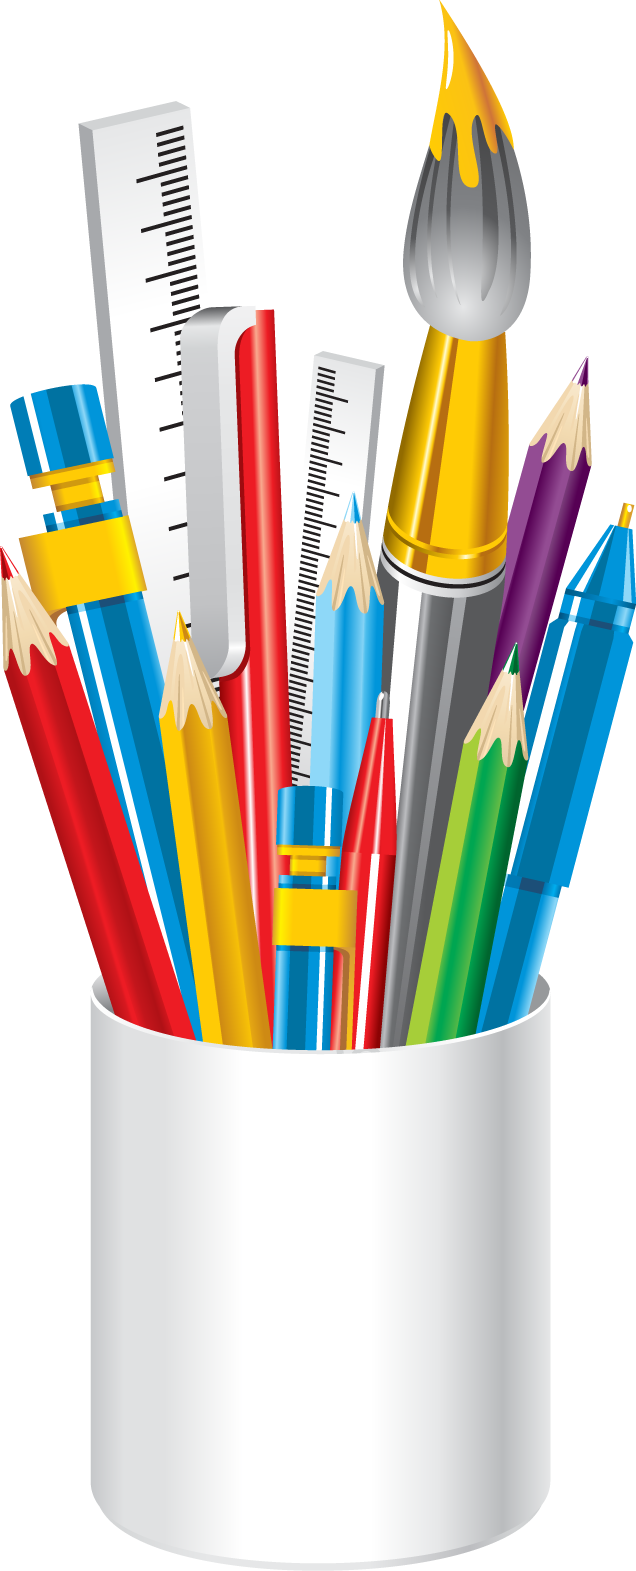 Crayon clipart transparent background. School supplies pictures free